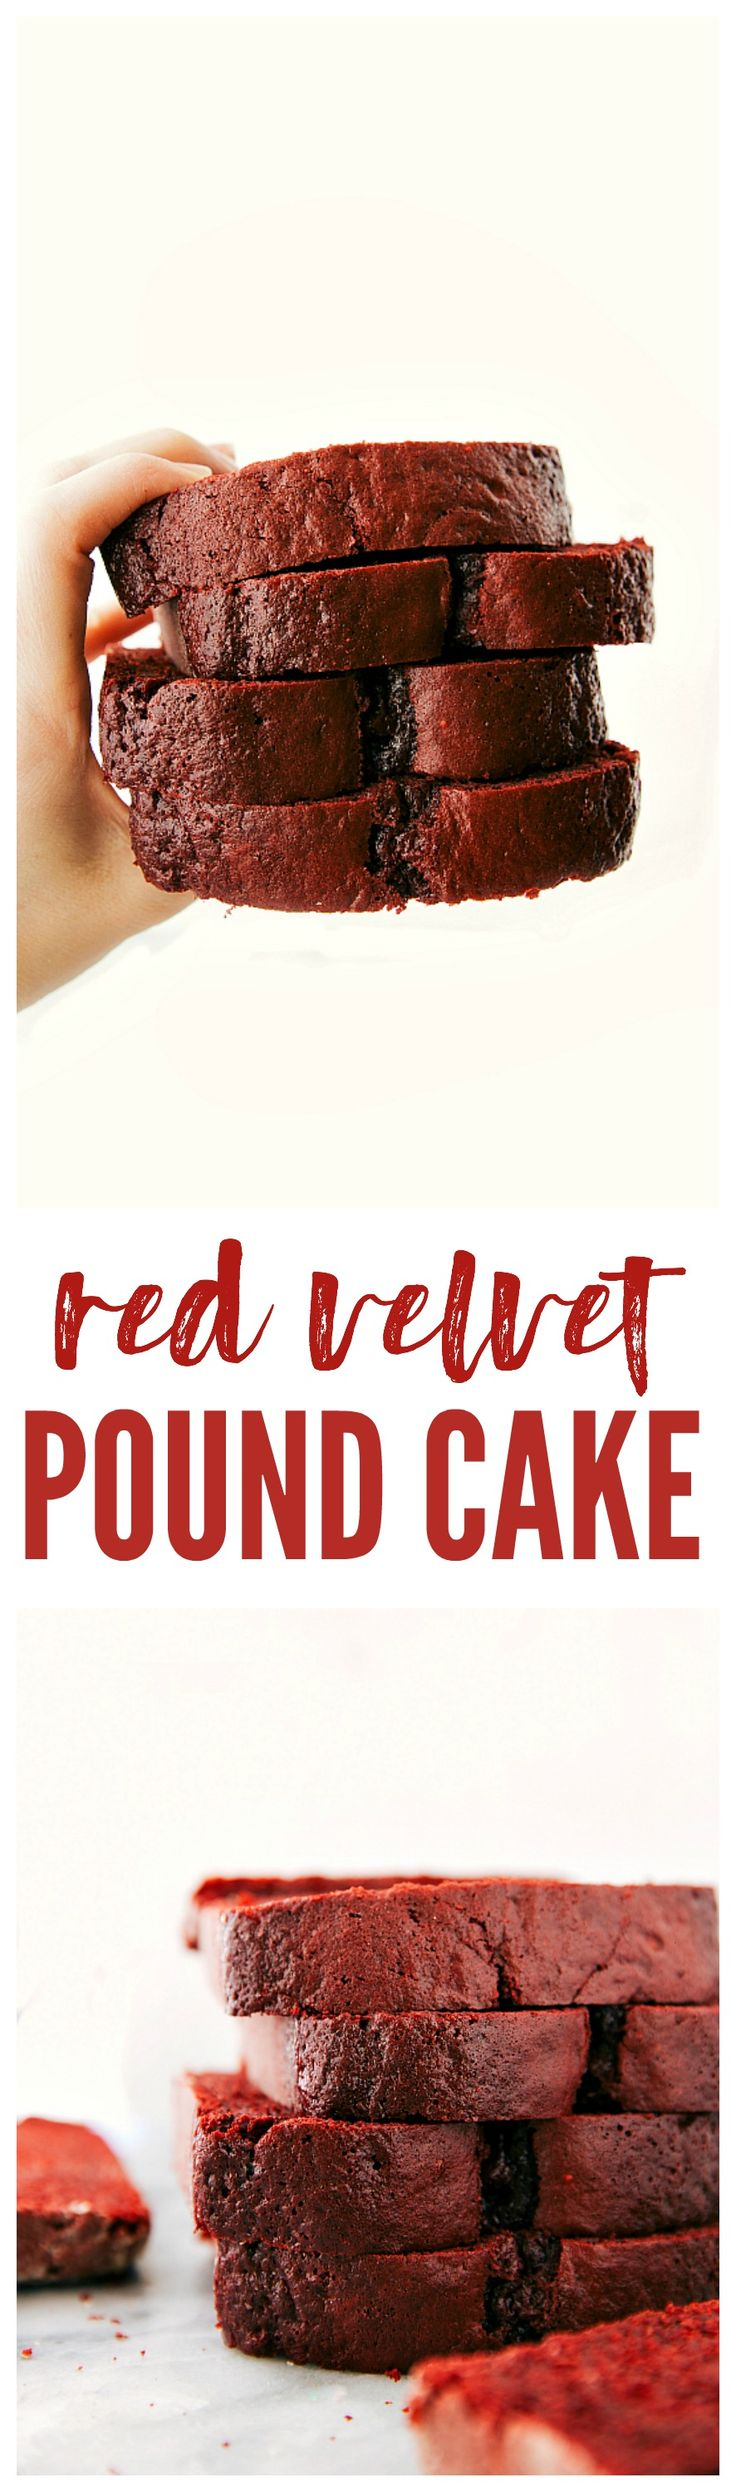 This red velvet pound cake is filled with delicious and rich flavors. It is thick and heavy and absolutely delicious!